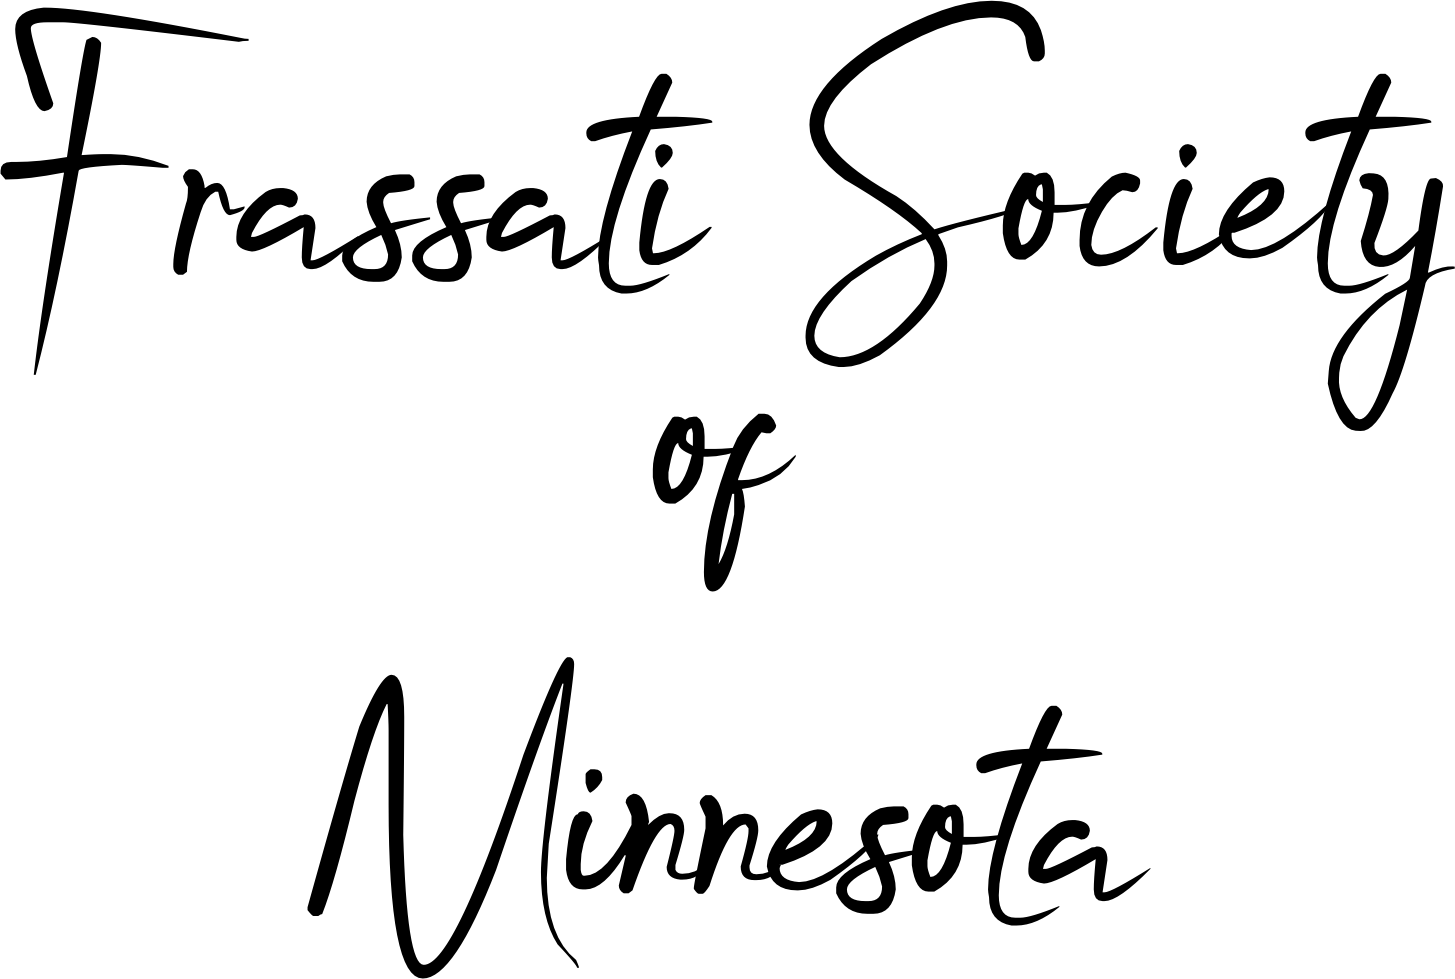 textlogo_stacked_black.png